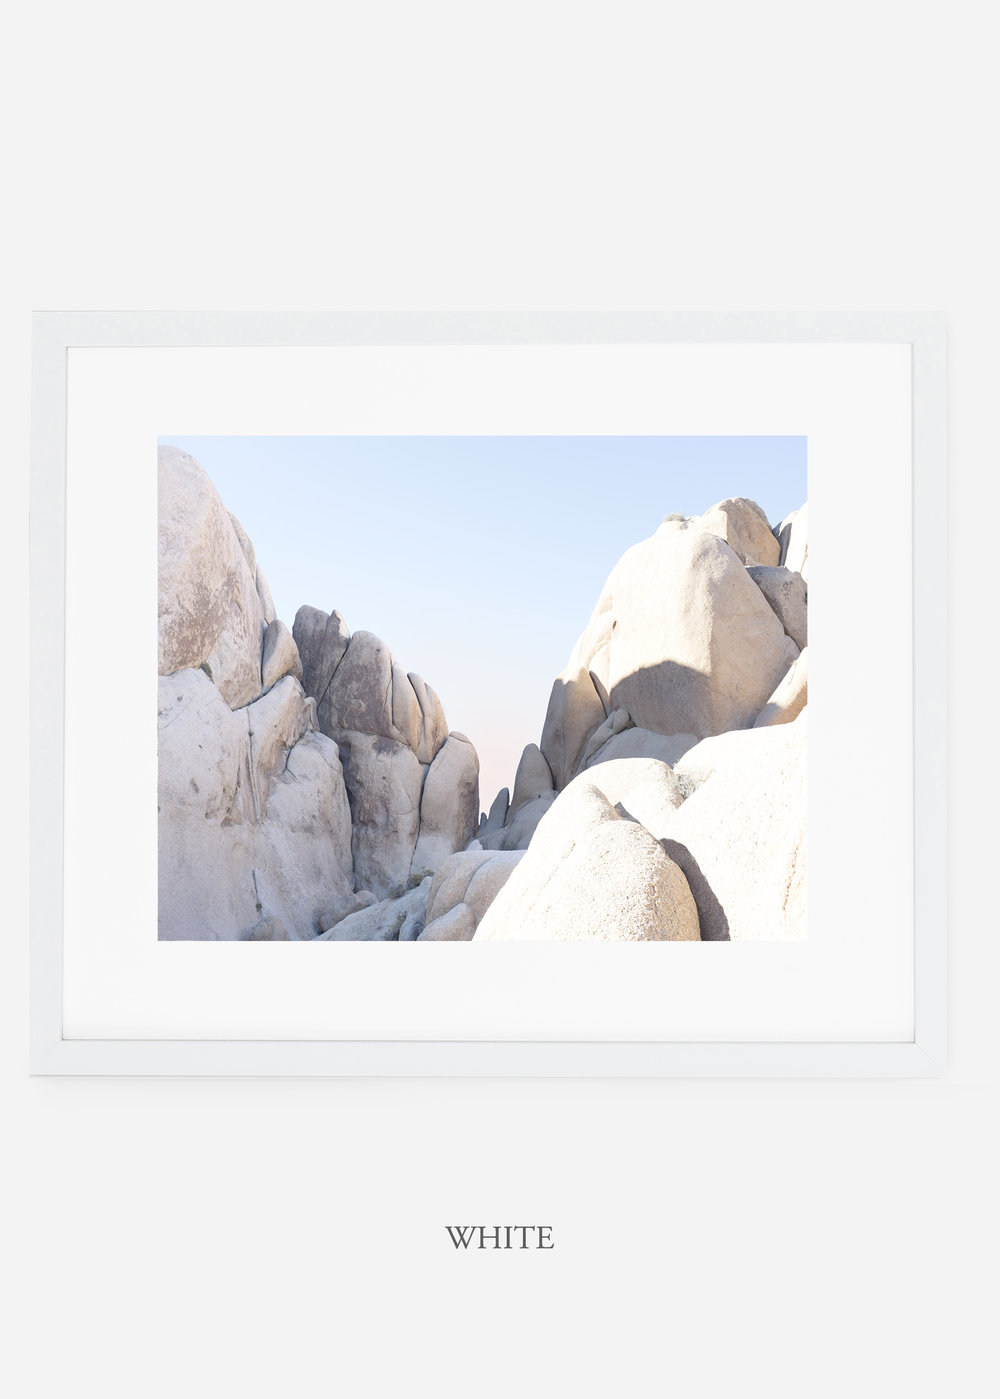 WilderCalifornia_whiteframe_JoshuaTree_No.18_interiordesign_prints_art.jpg